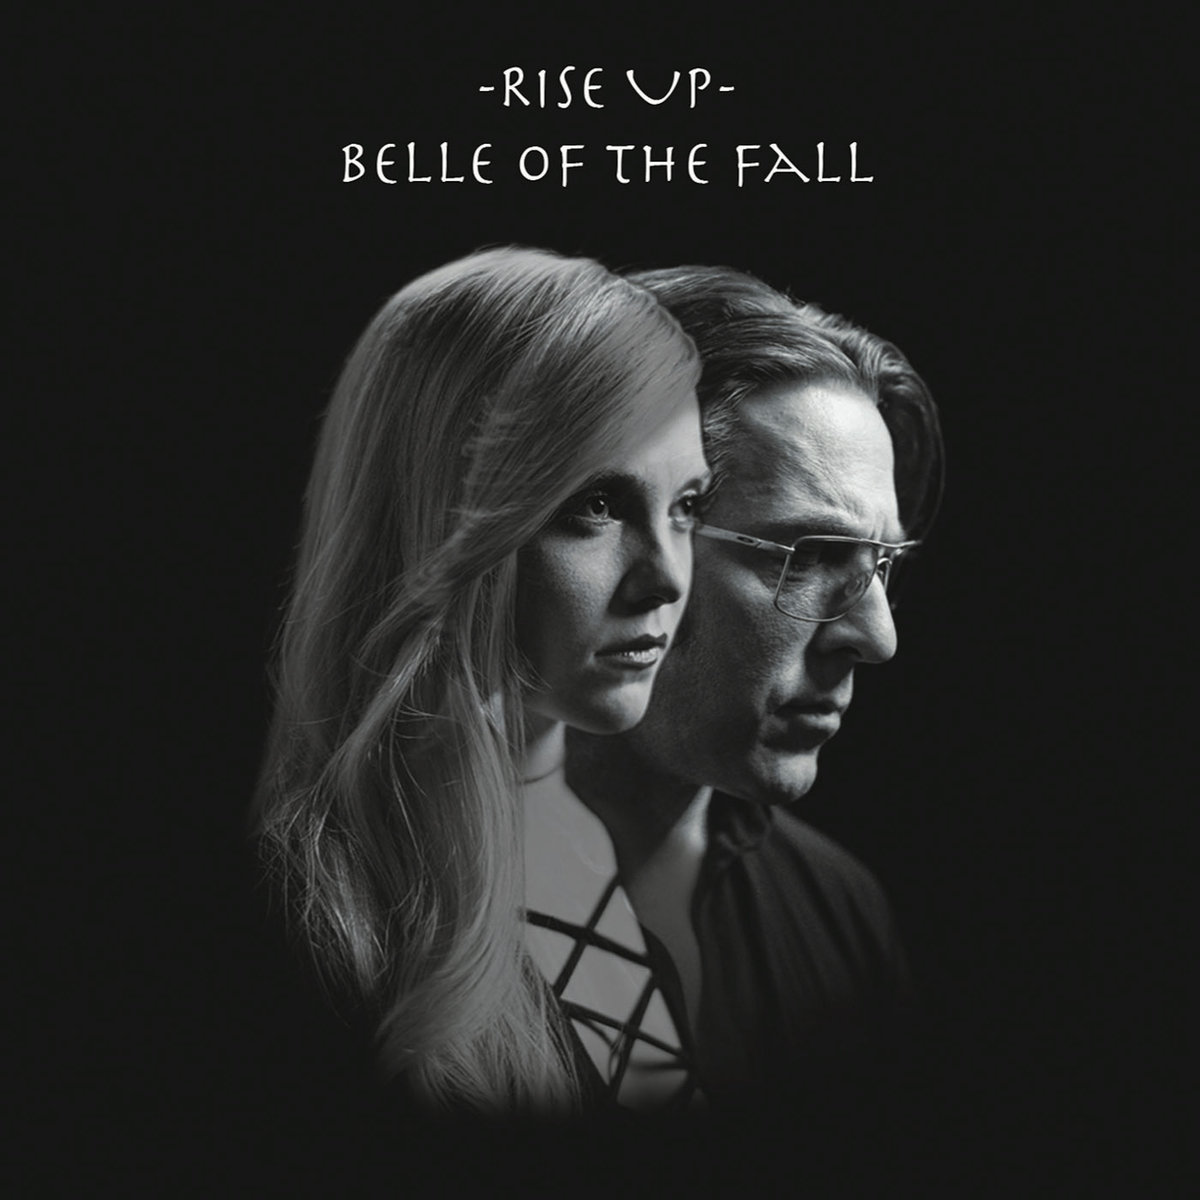 Belle of the Fall Rise Up review